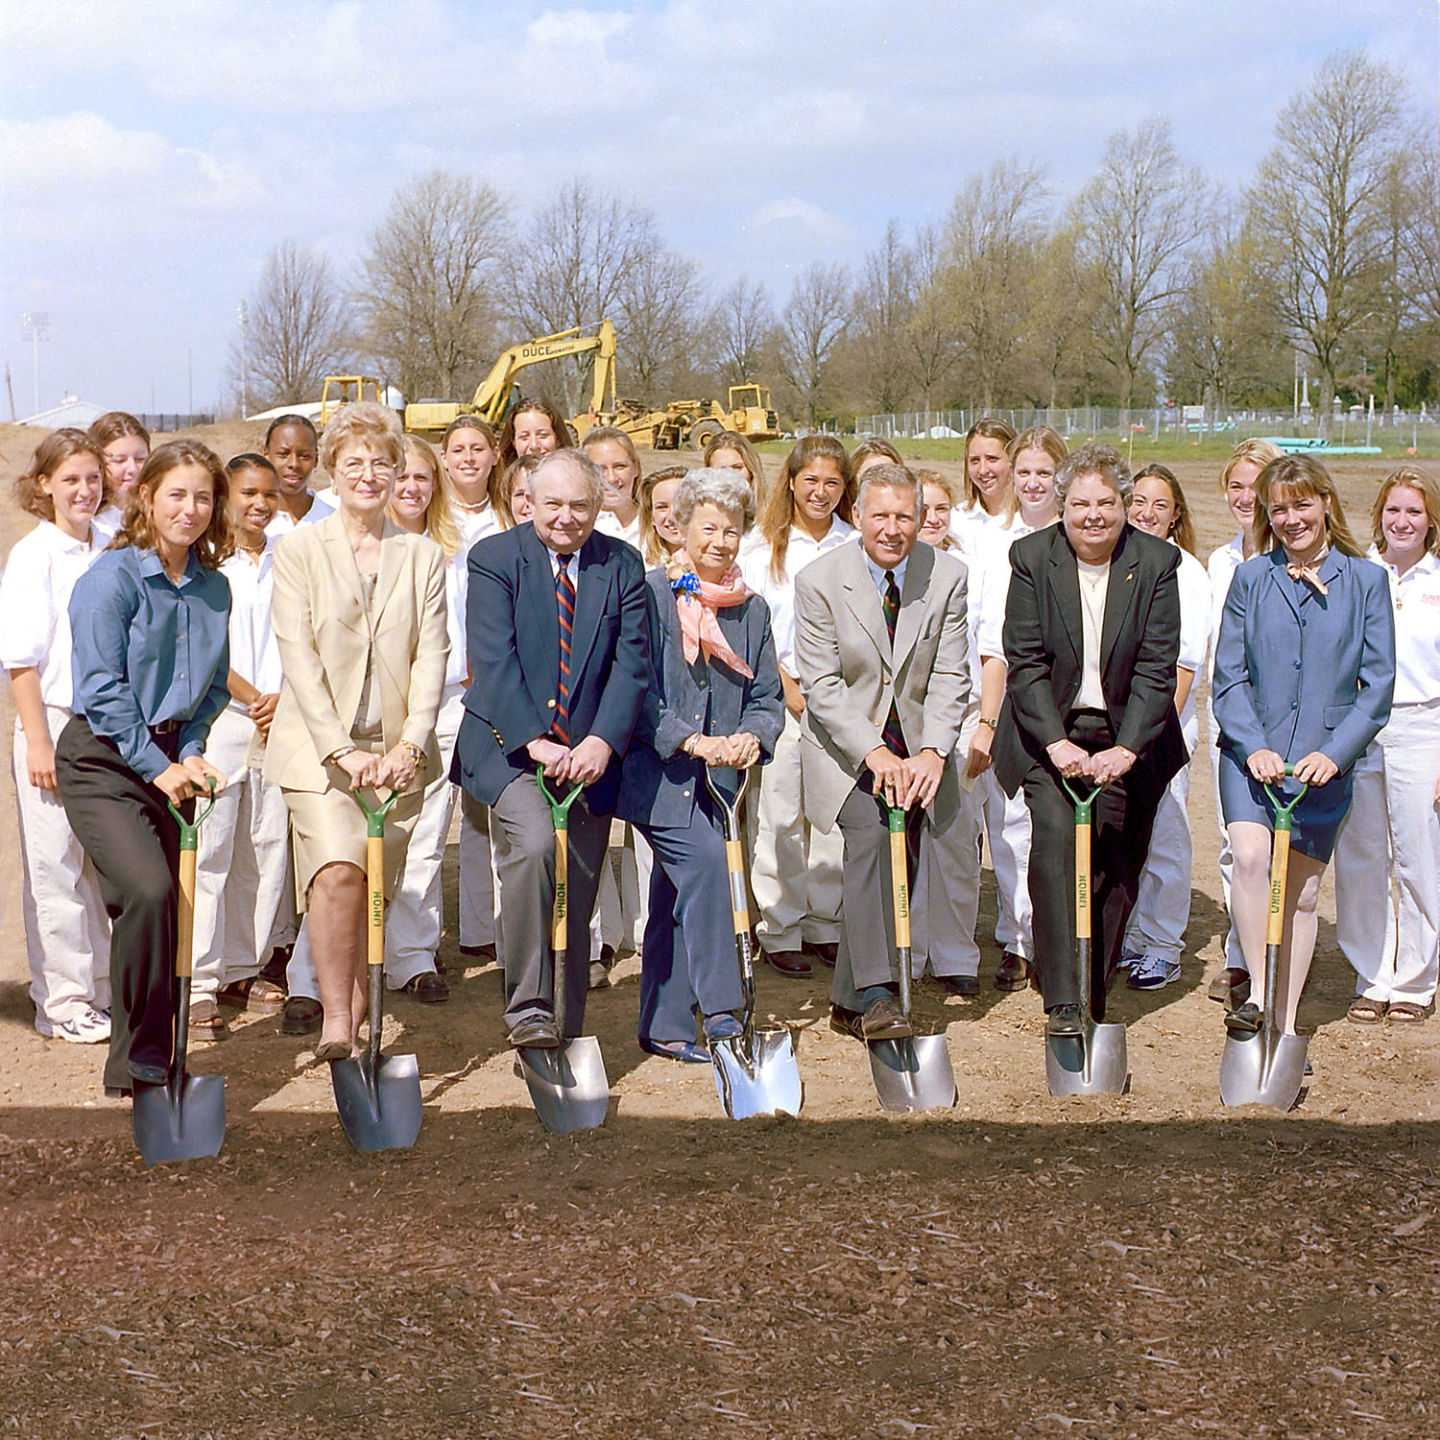 Shorty Eichelberger joined members of the Illinois softball team and DIA staff and at the Eichelberger Field Groundbreaking Ceremony April, 2000.